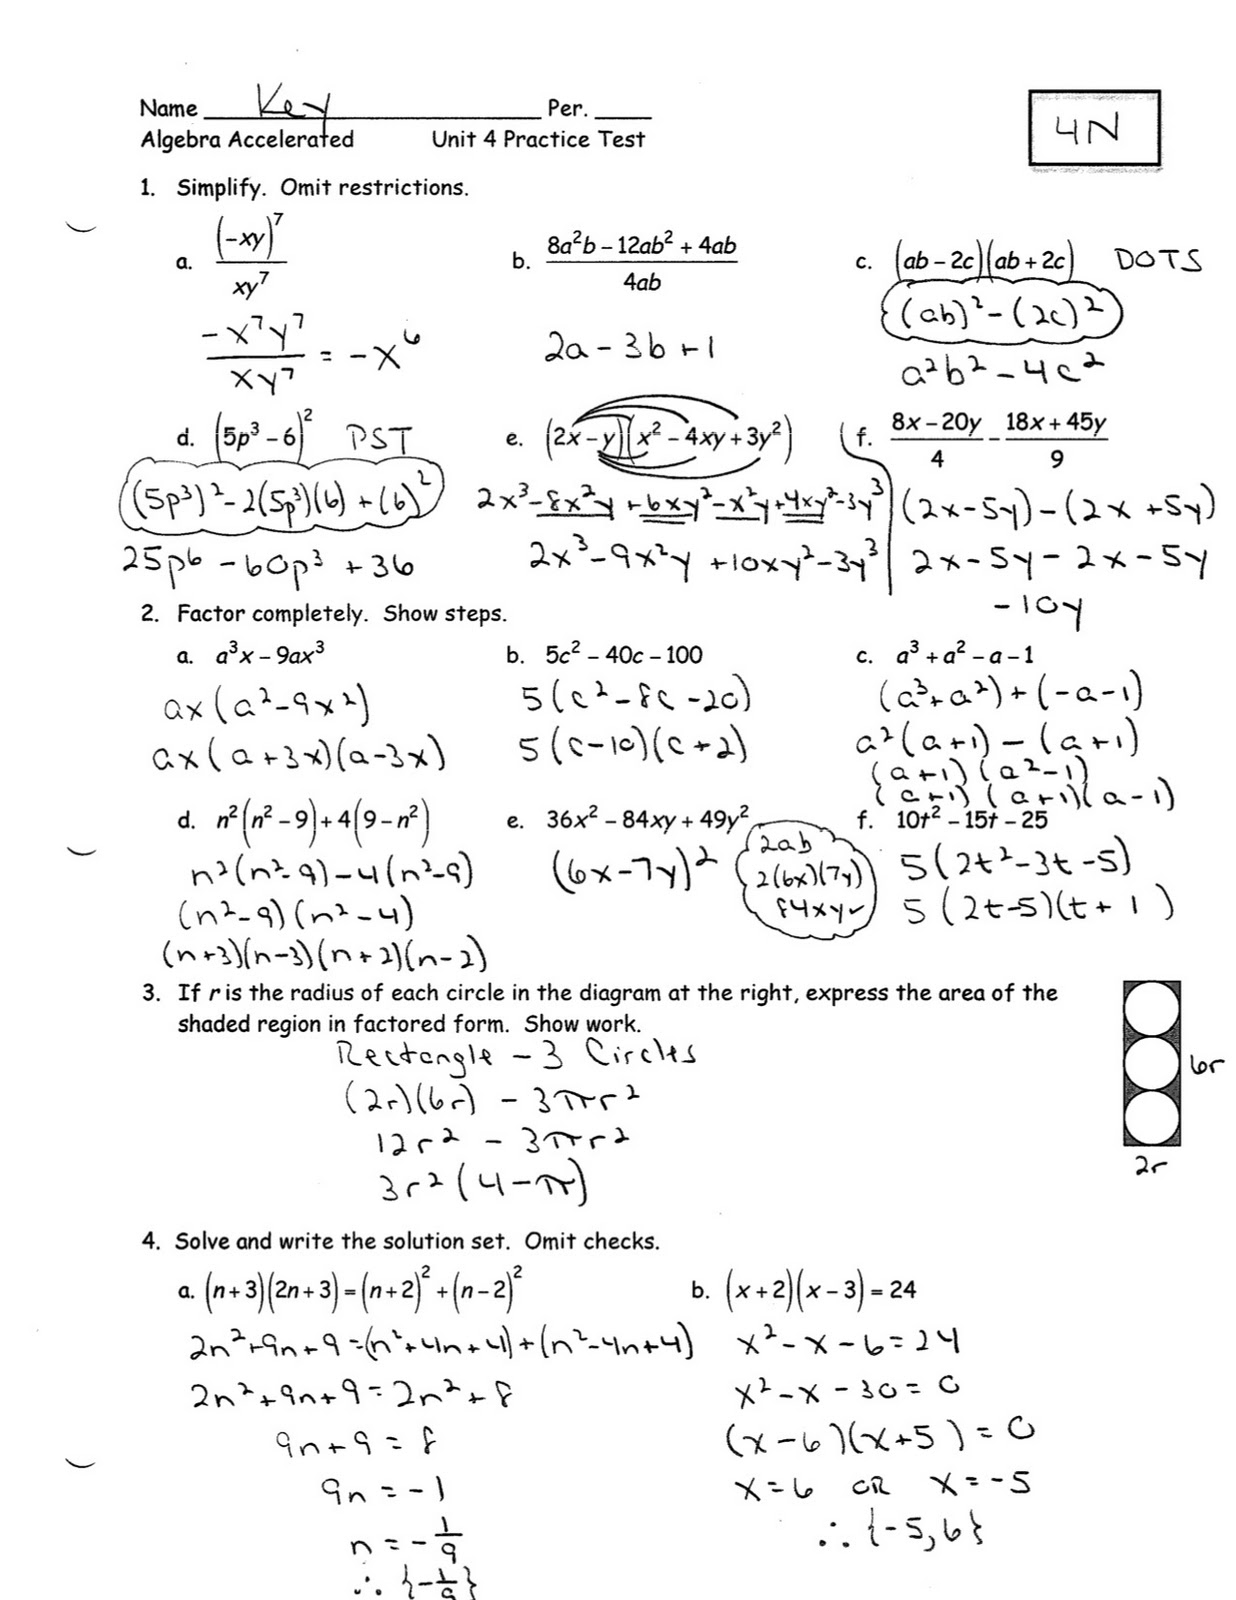 Algebra 1 Unit 4 Test Linear Equations Answers